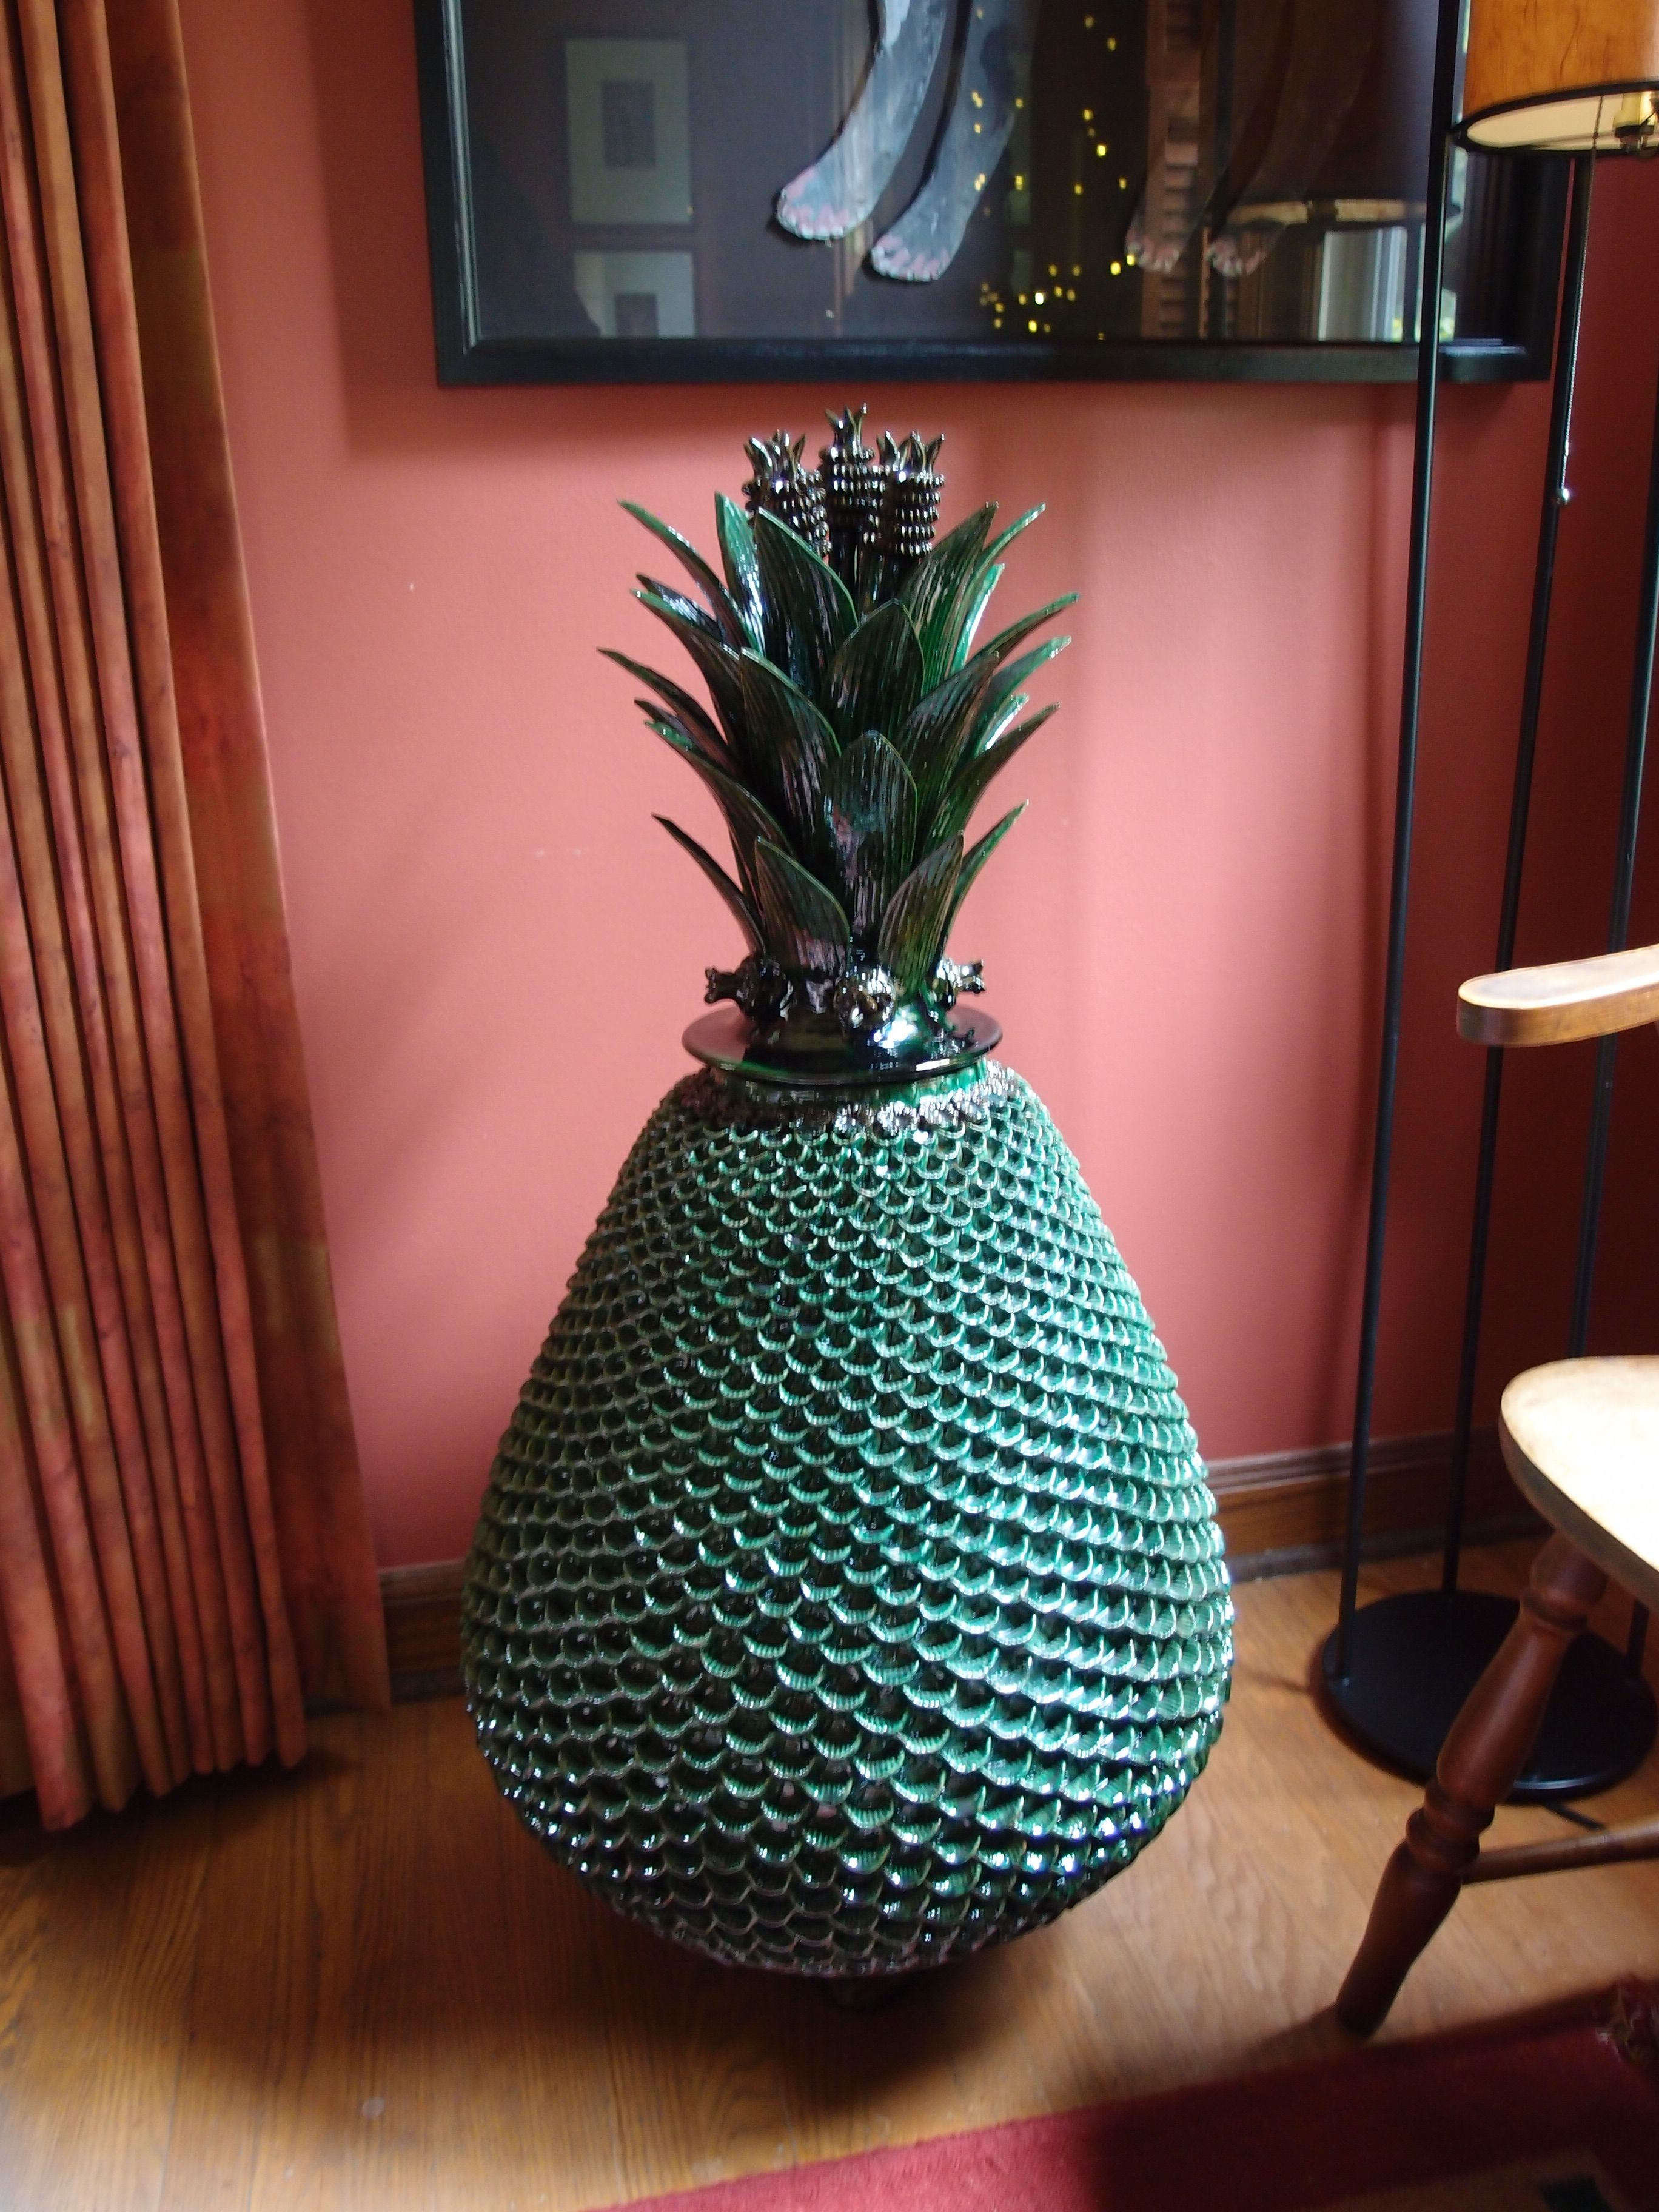 pineapple decorations for kitchen trashcans mexican decor a huge in ceramic art from